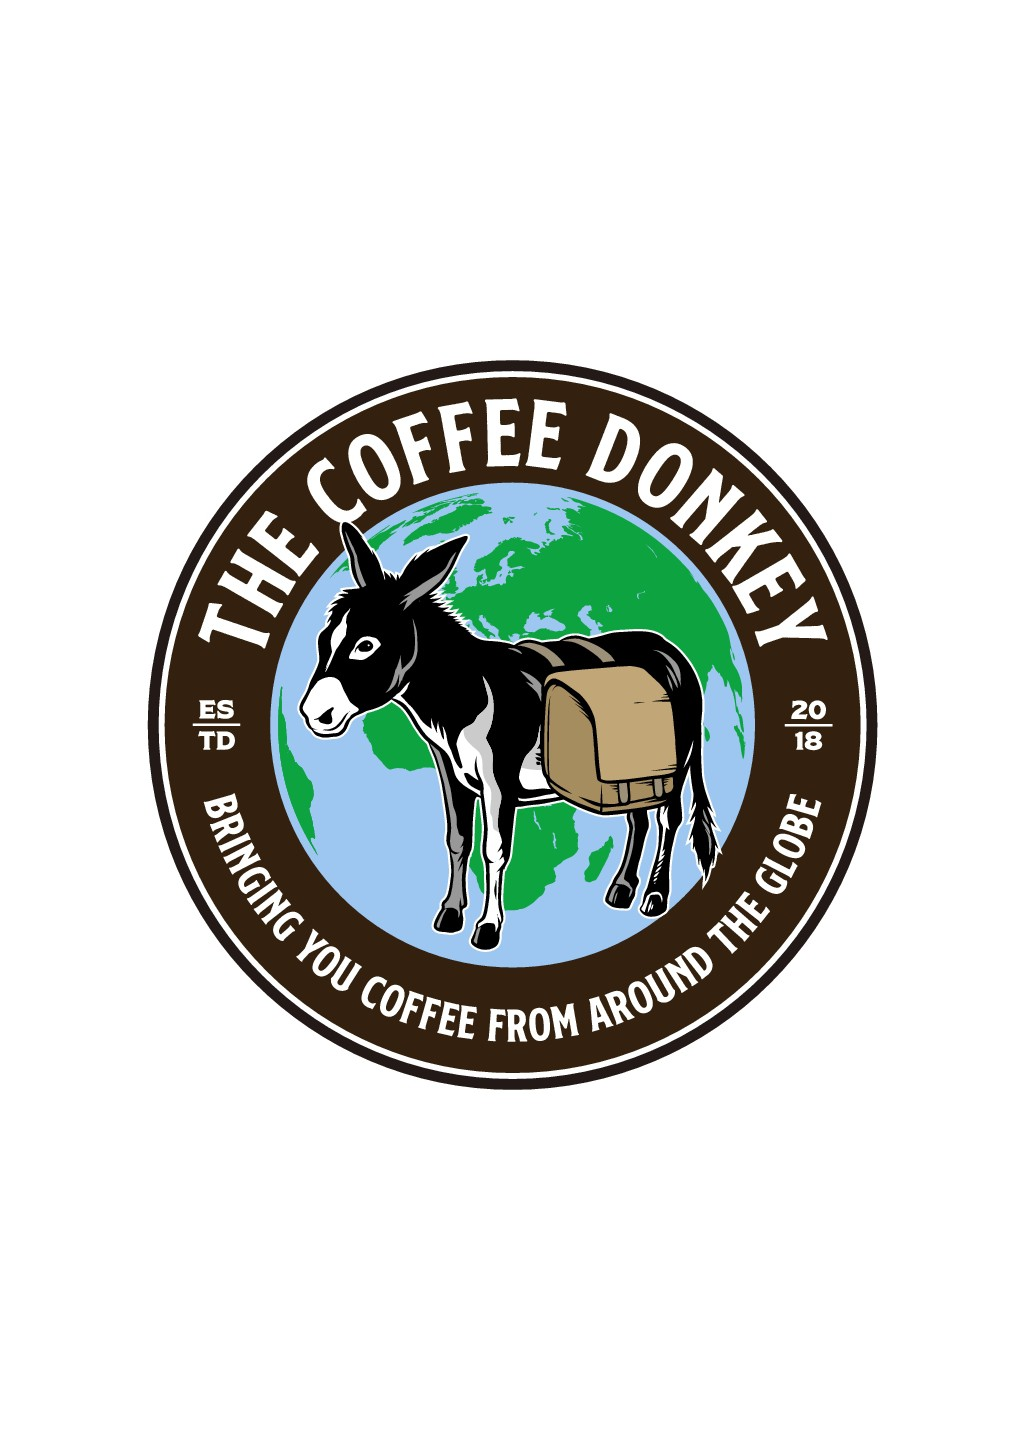 Awesome logo for roasted coffee, The Coffee Donkey